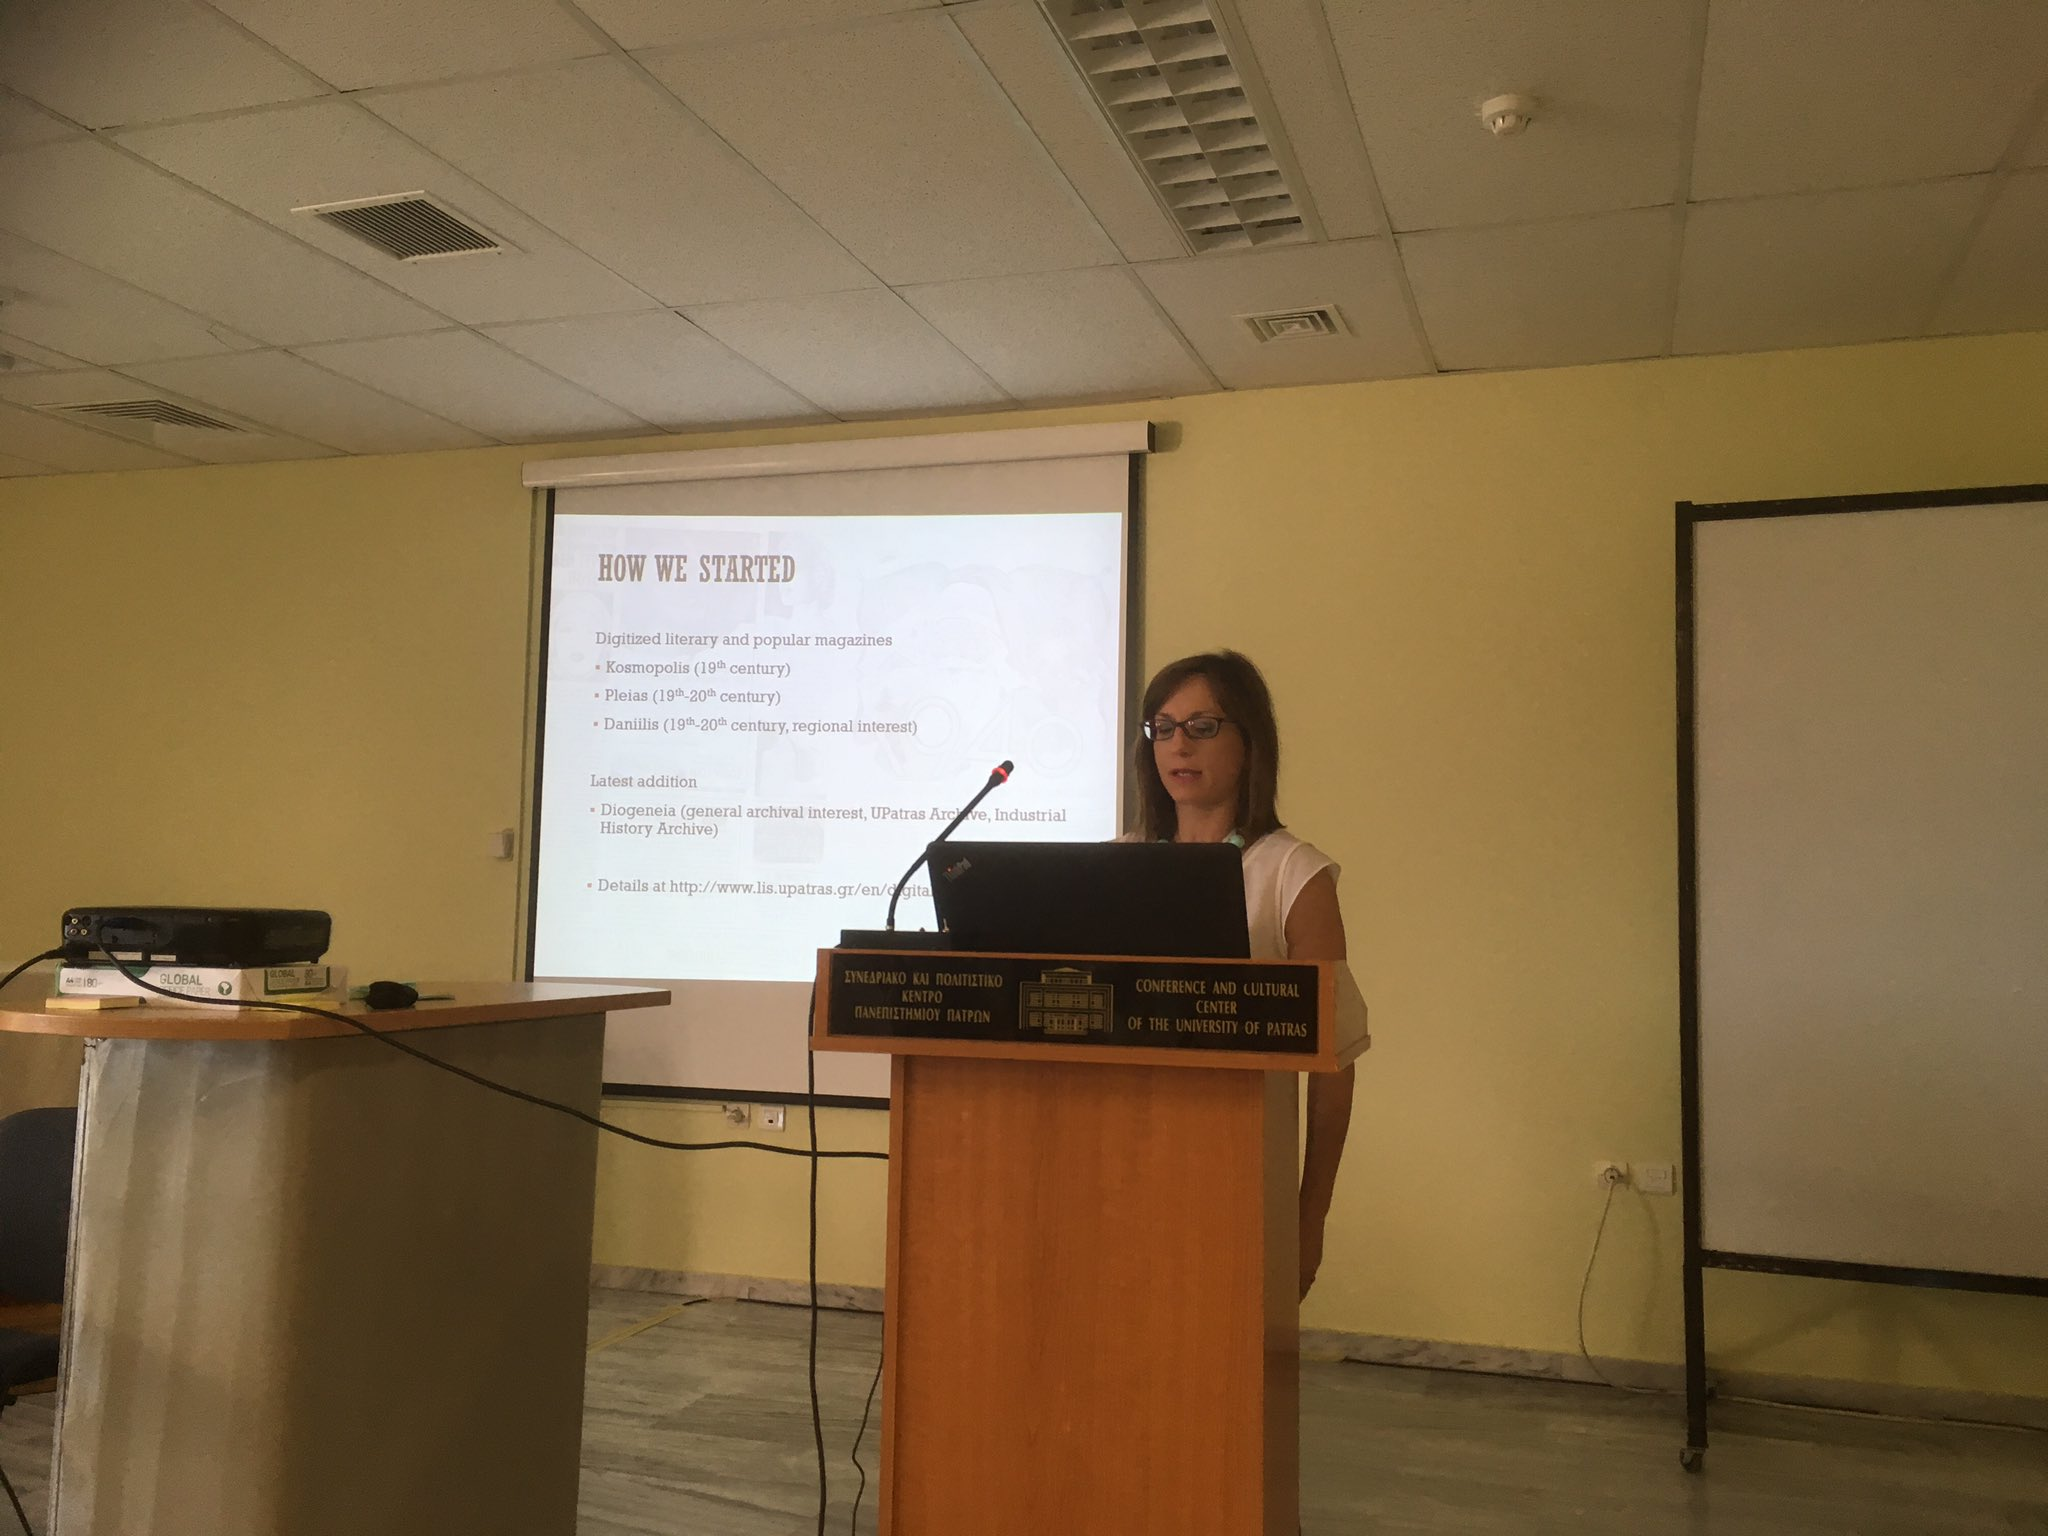 We're now hearing from Despoina Gkogkou from our hosts at University of Patras. Join her for the discussion on #skillbuilding #liber2017 https://t.co/agQDvS1TdG